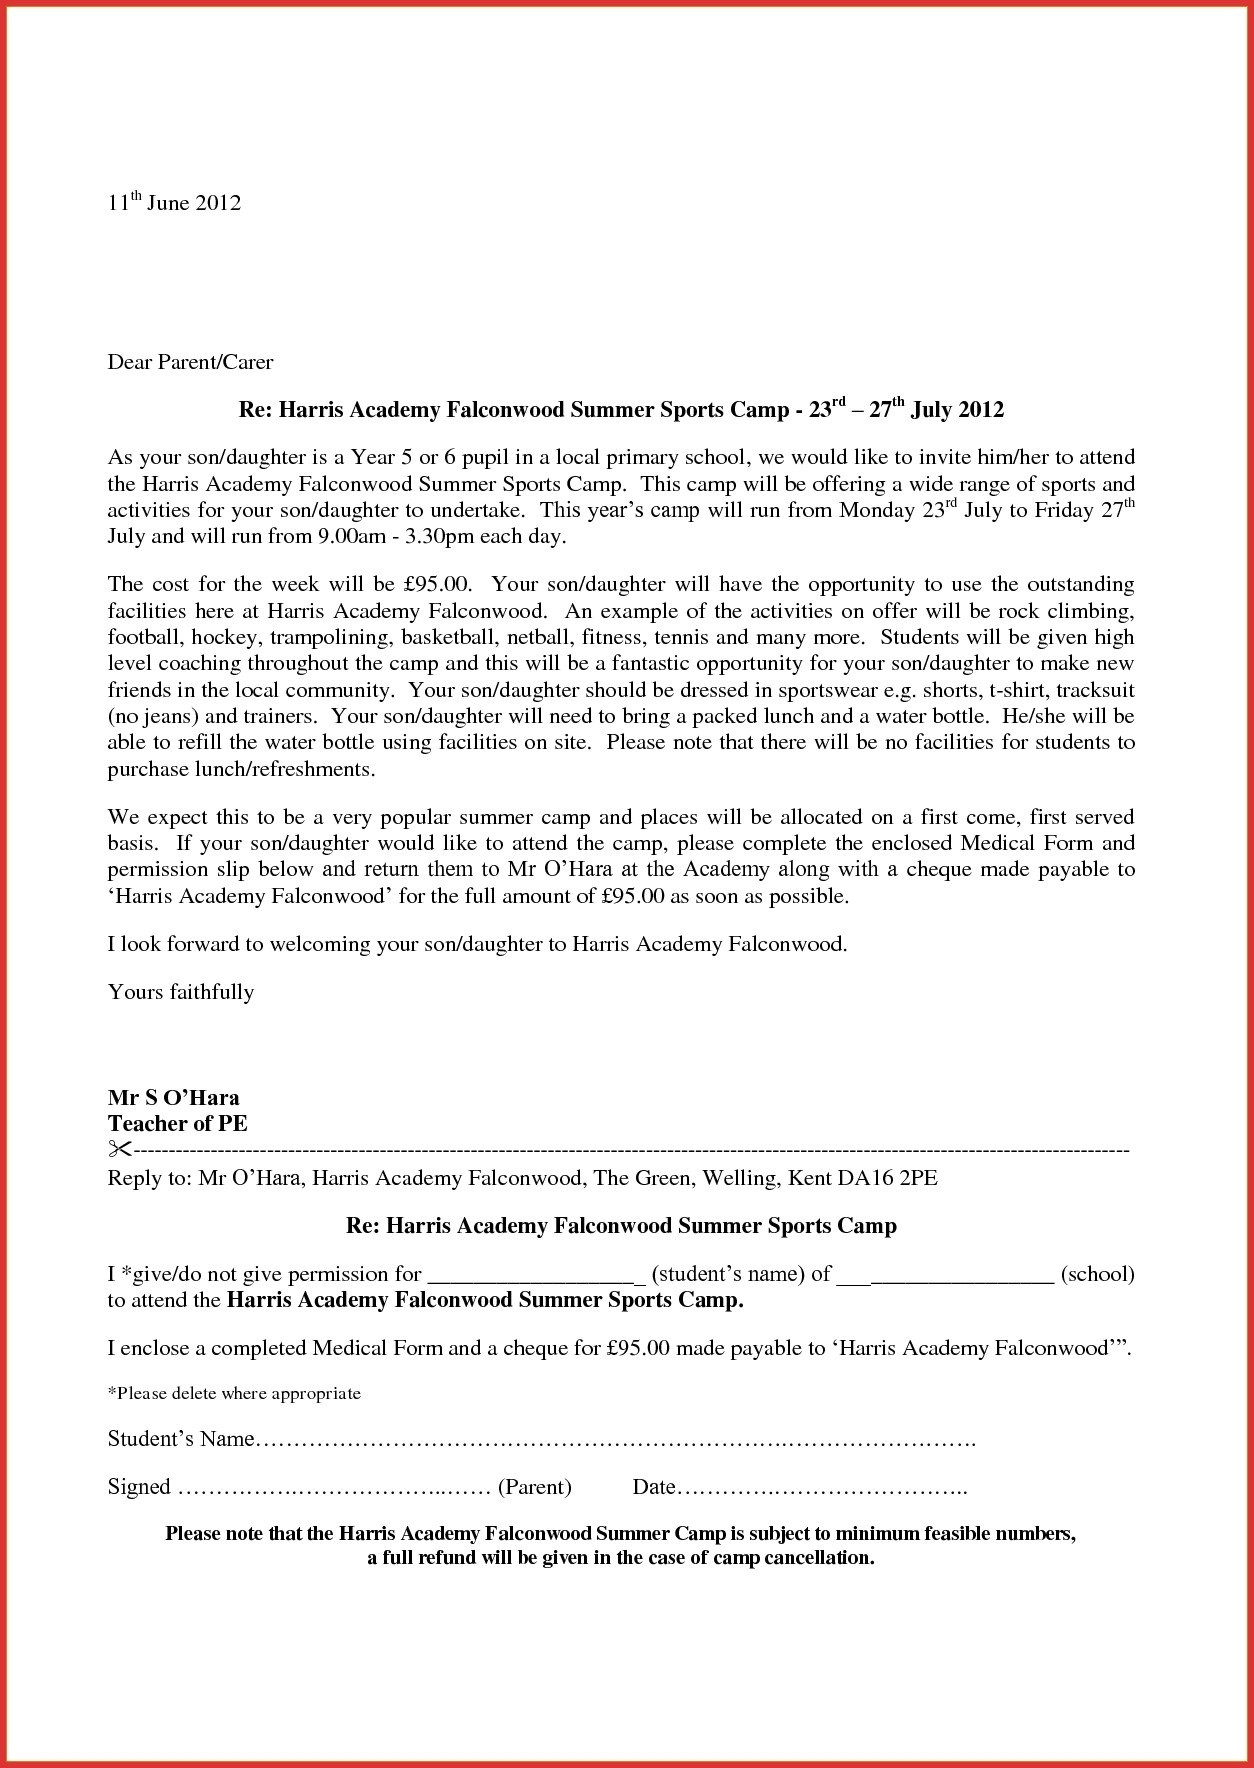 Application Letter Format For School Admission | World Of Example pertaining to Application Letter Format For School Admission 23236